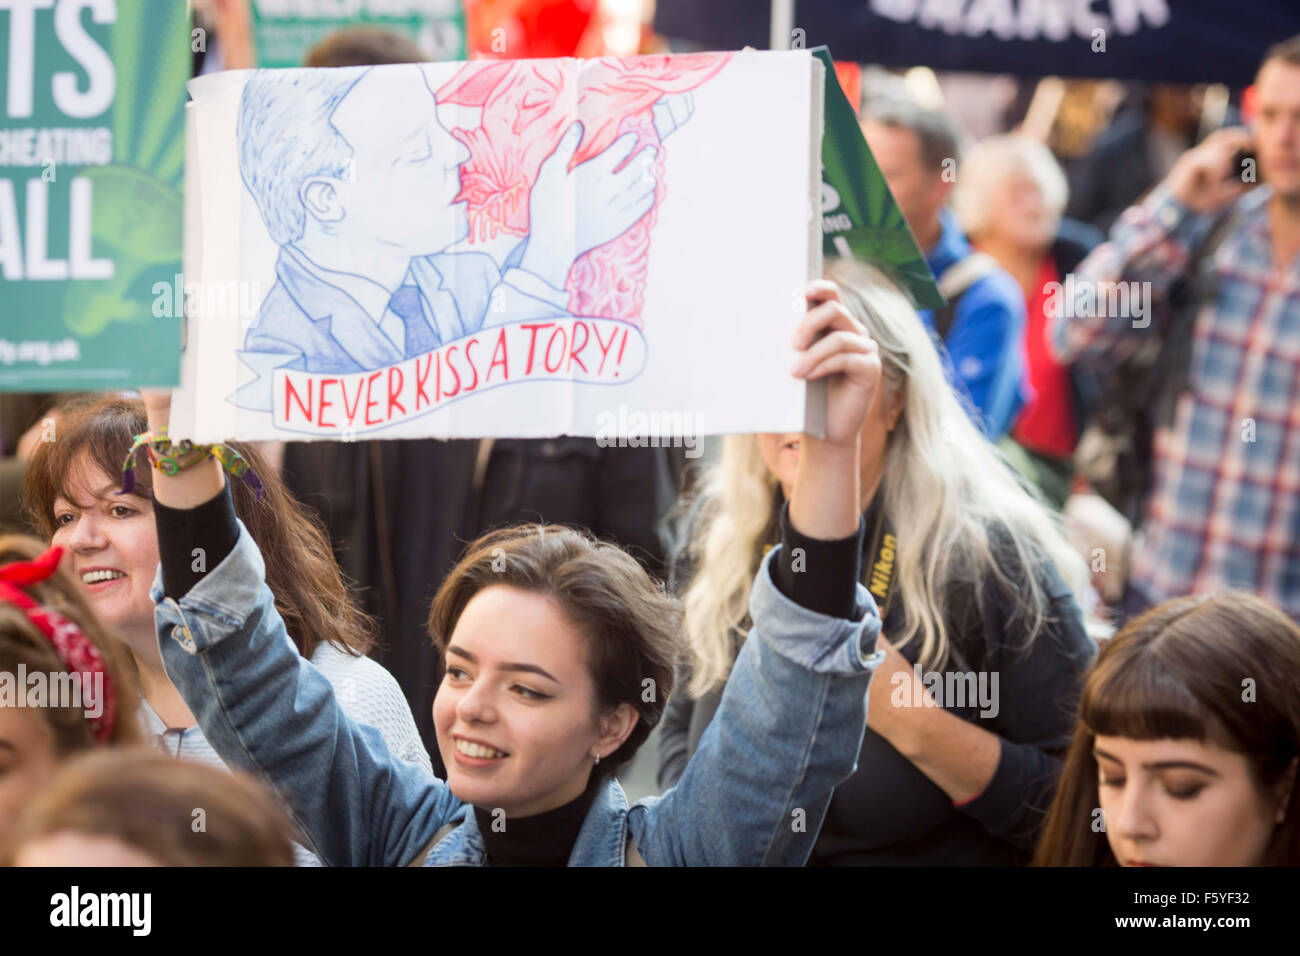 Manchester anti-austerity protest rally - Stock Image